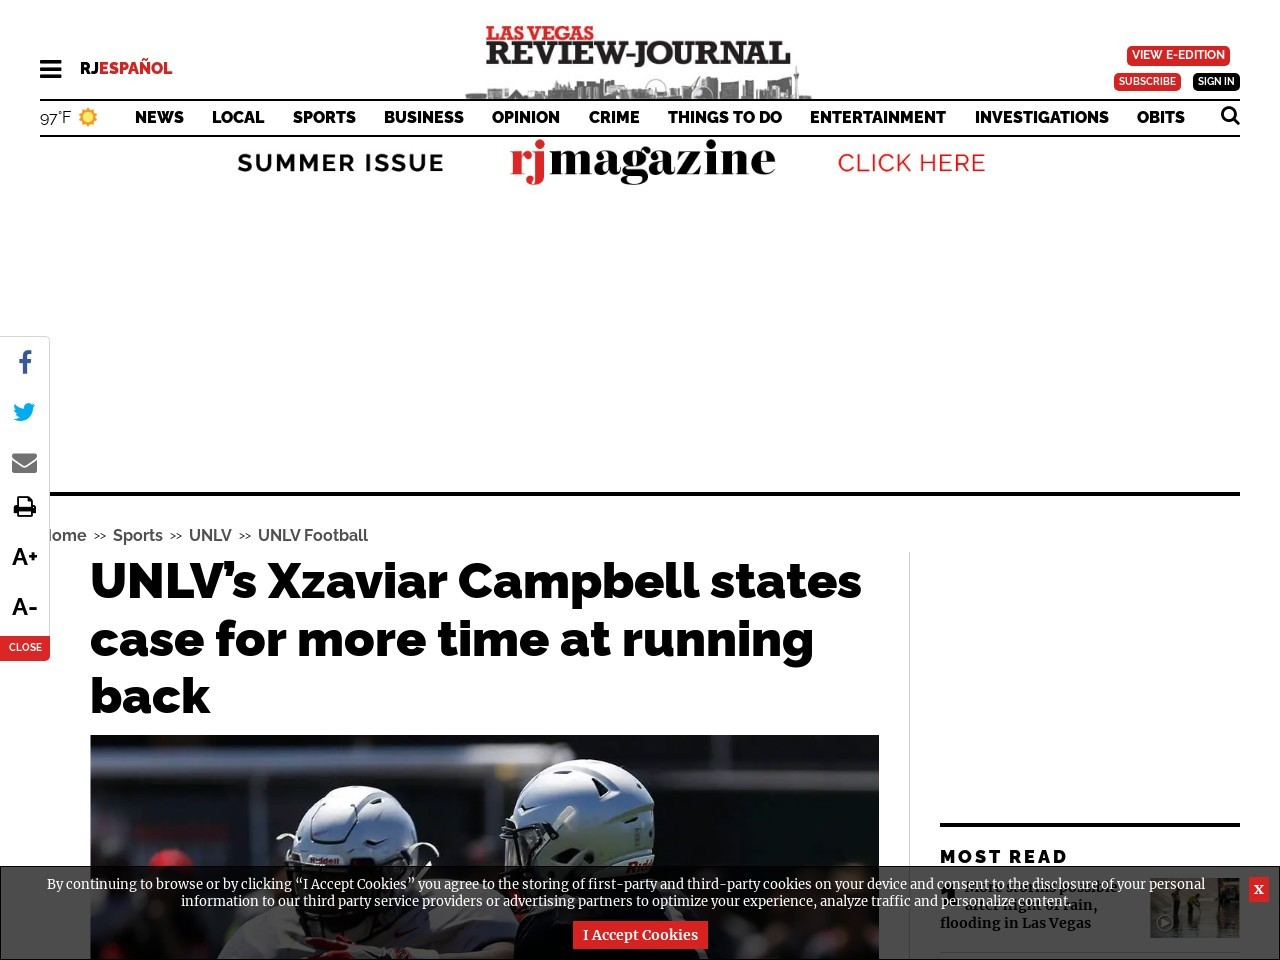 UNLV's Xzaviar Campbell states case for more time at running back